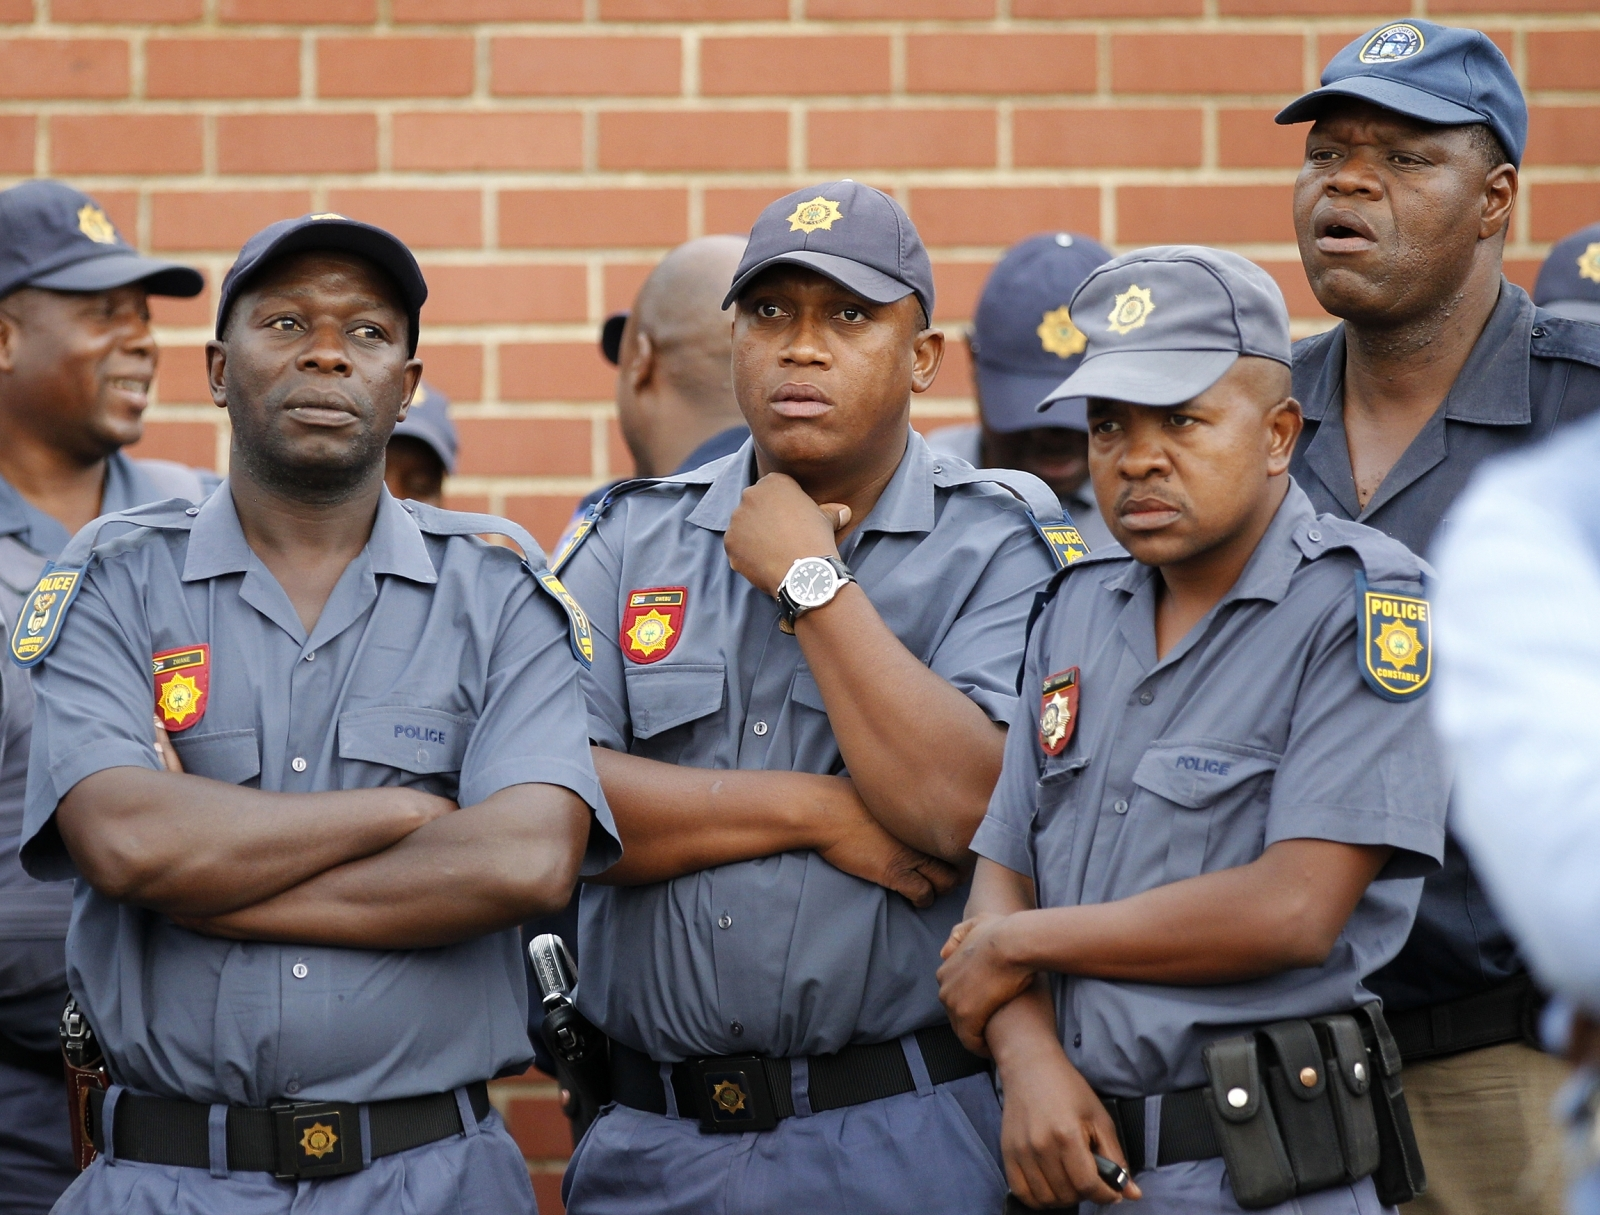 Photo Album - Saps Police pictures south africa